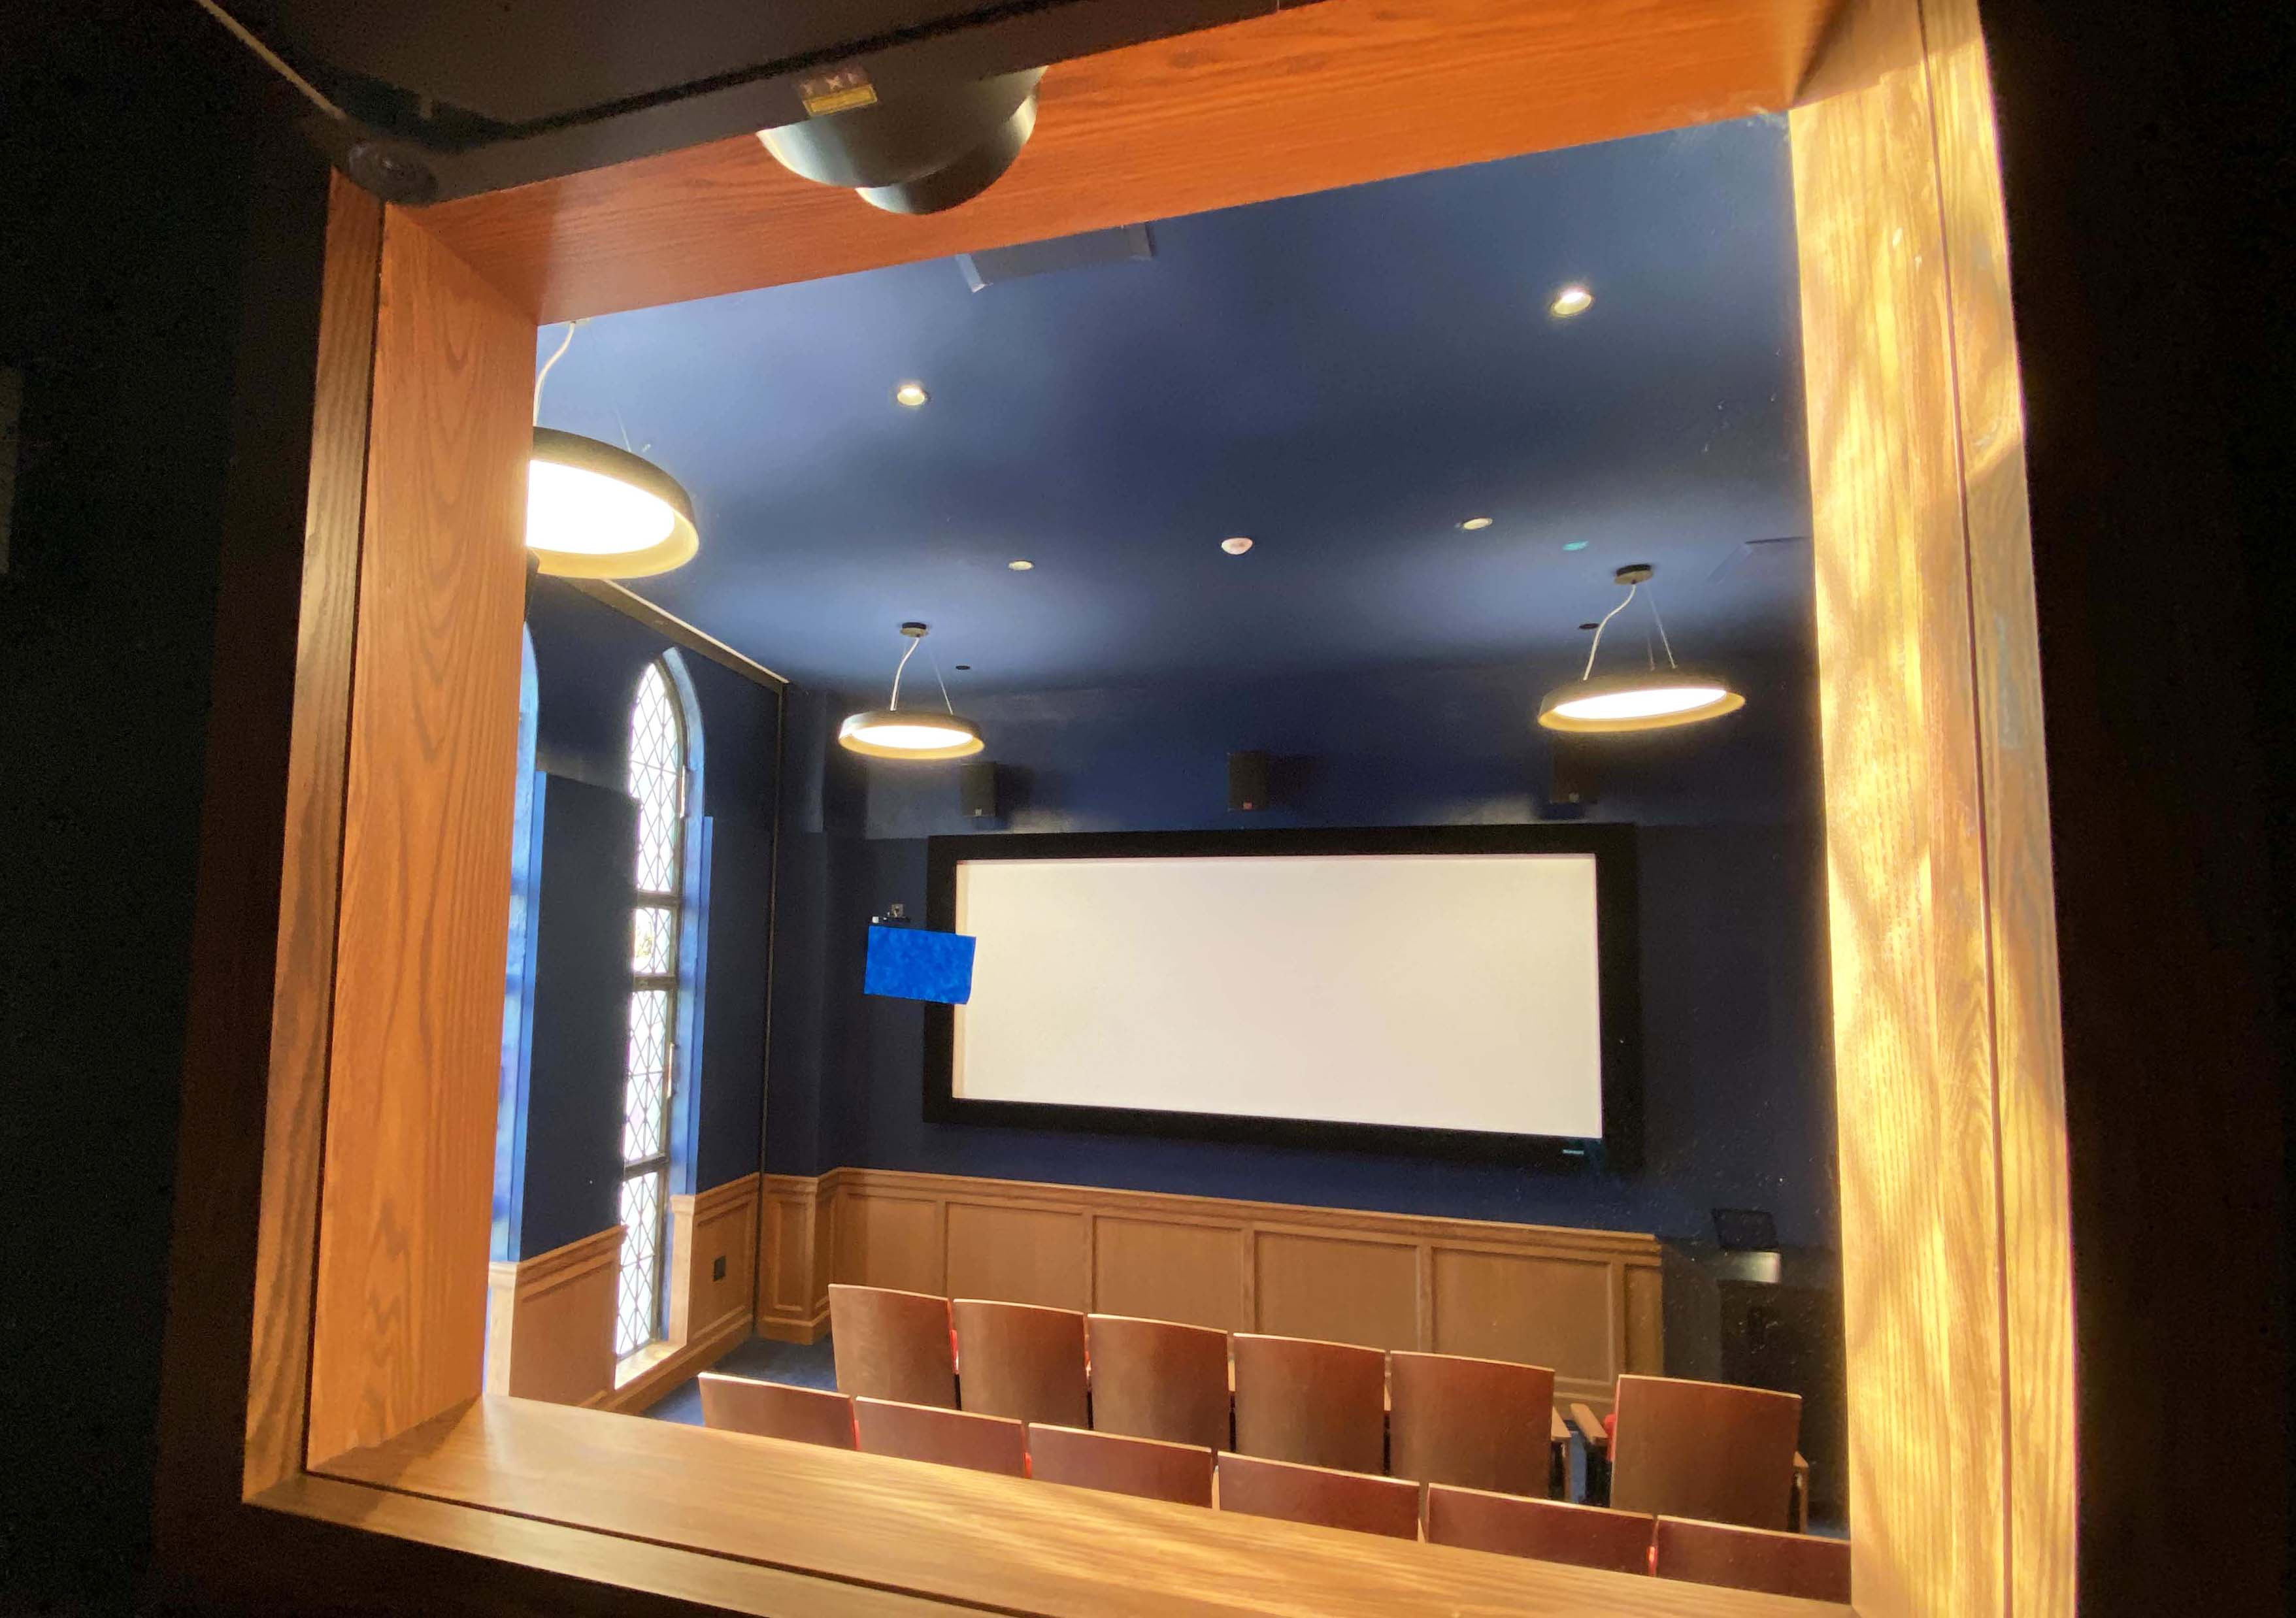 View through window of large screen viewed from projection room to the screening room